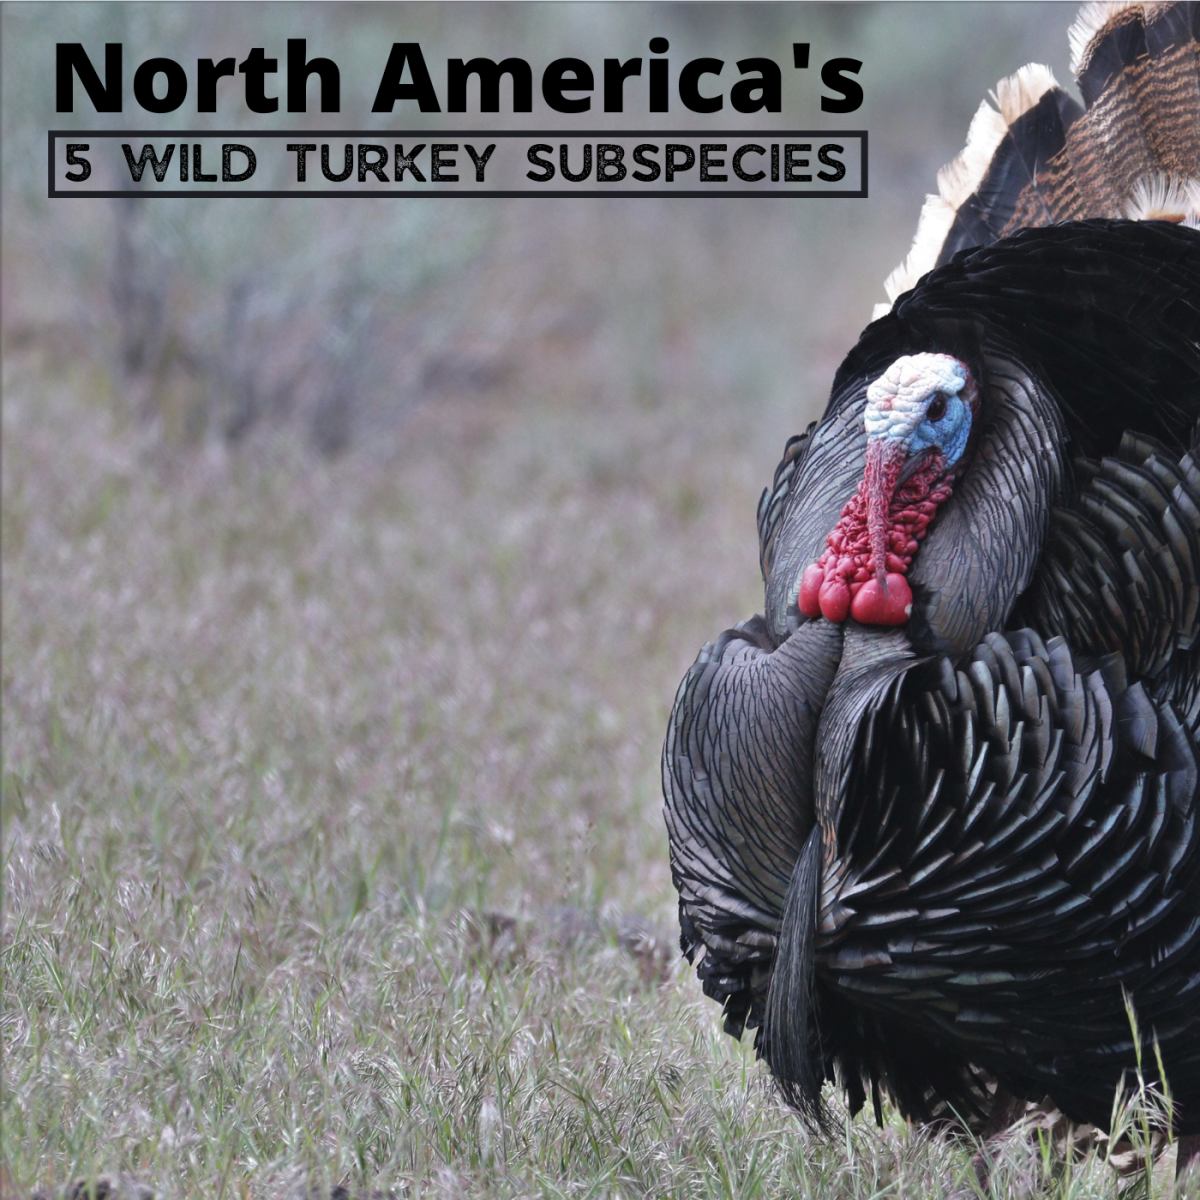 North American wild turkeys are all the same species, but they can be divided into five unique subspecies by characteristics like size, range, and appearance.